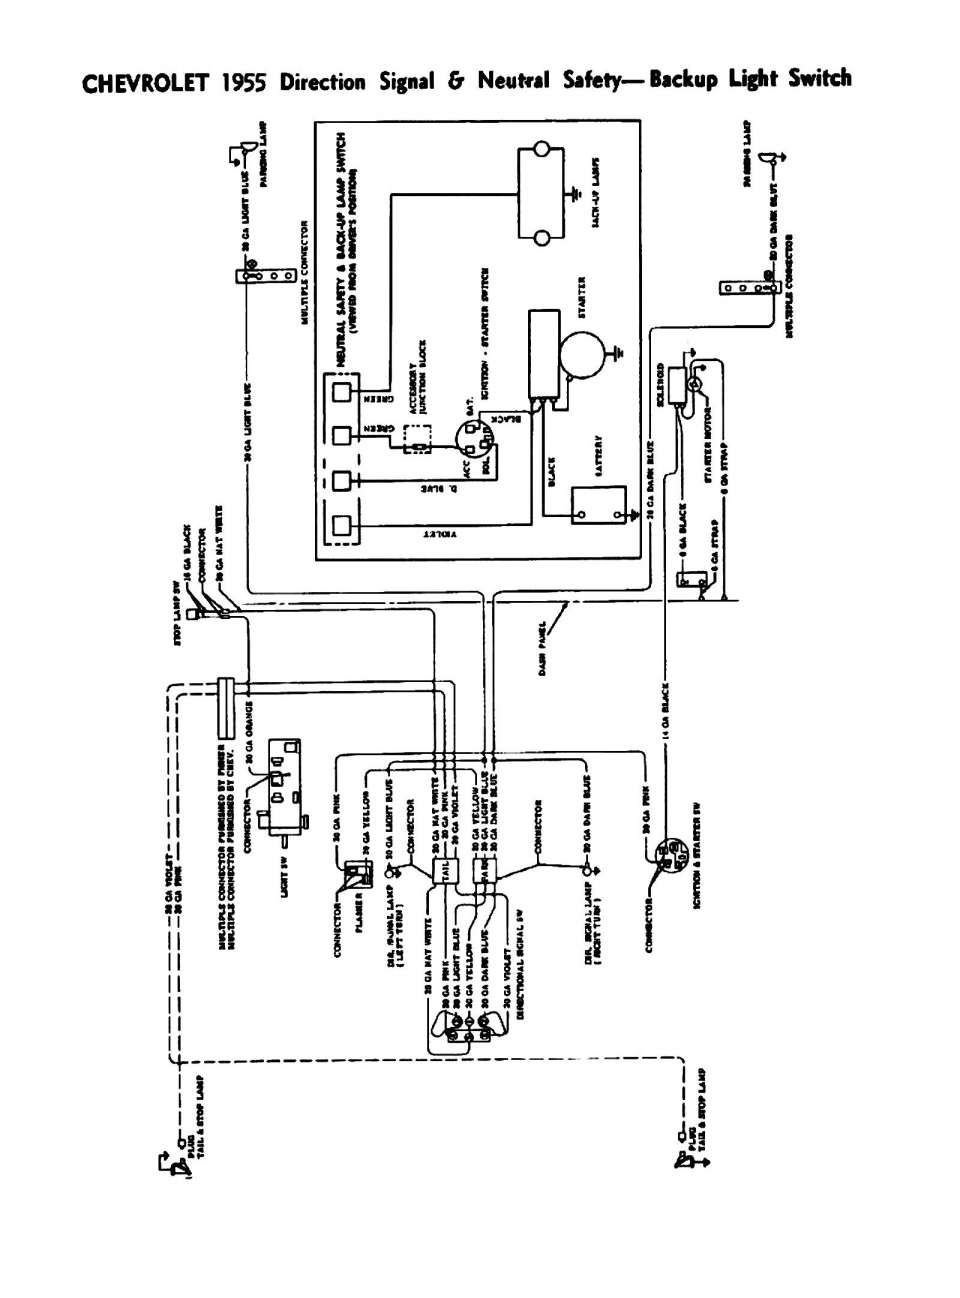 16 1957 Chevy Truck Ignition Switch Wiring Diagram Truck